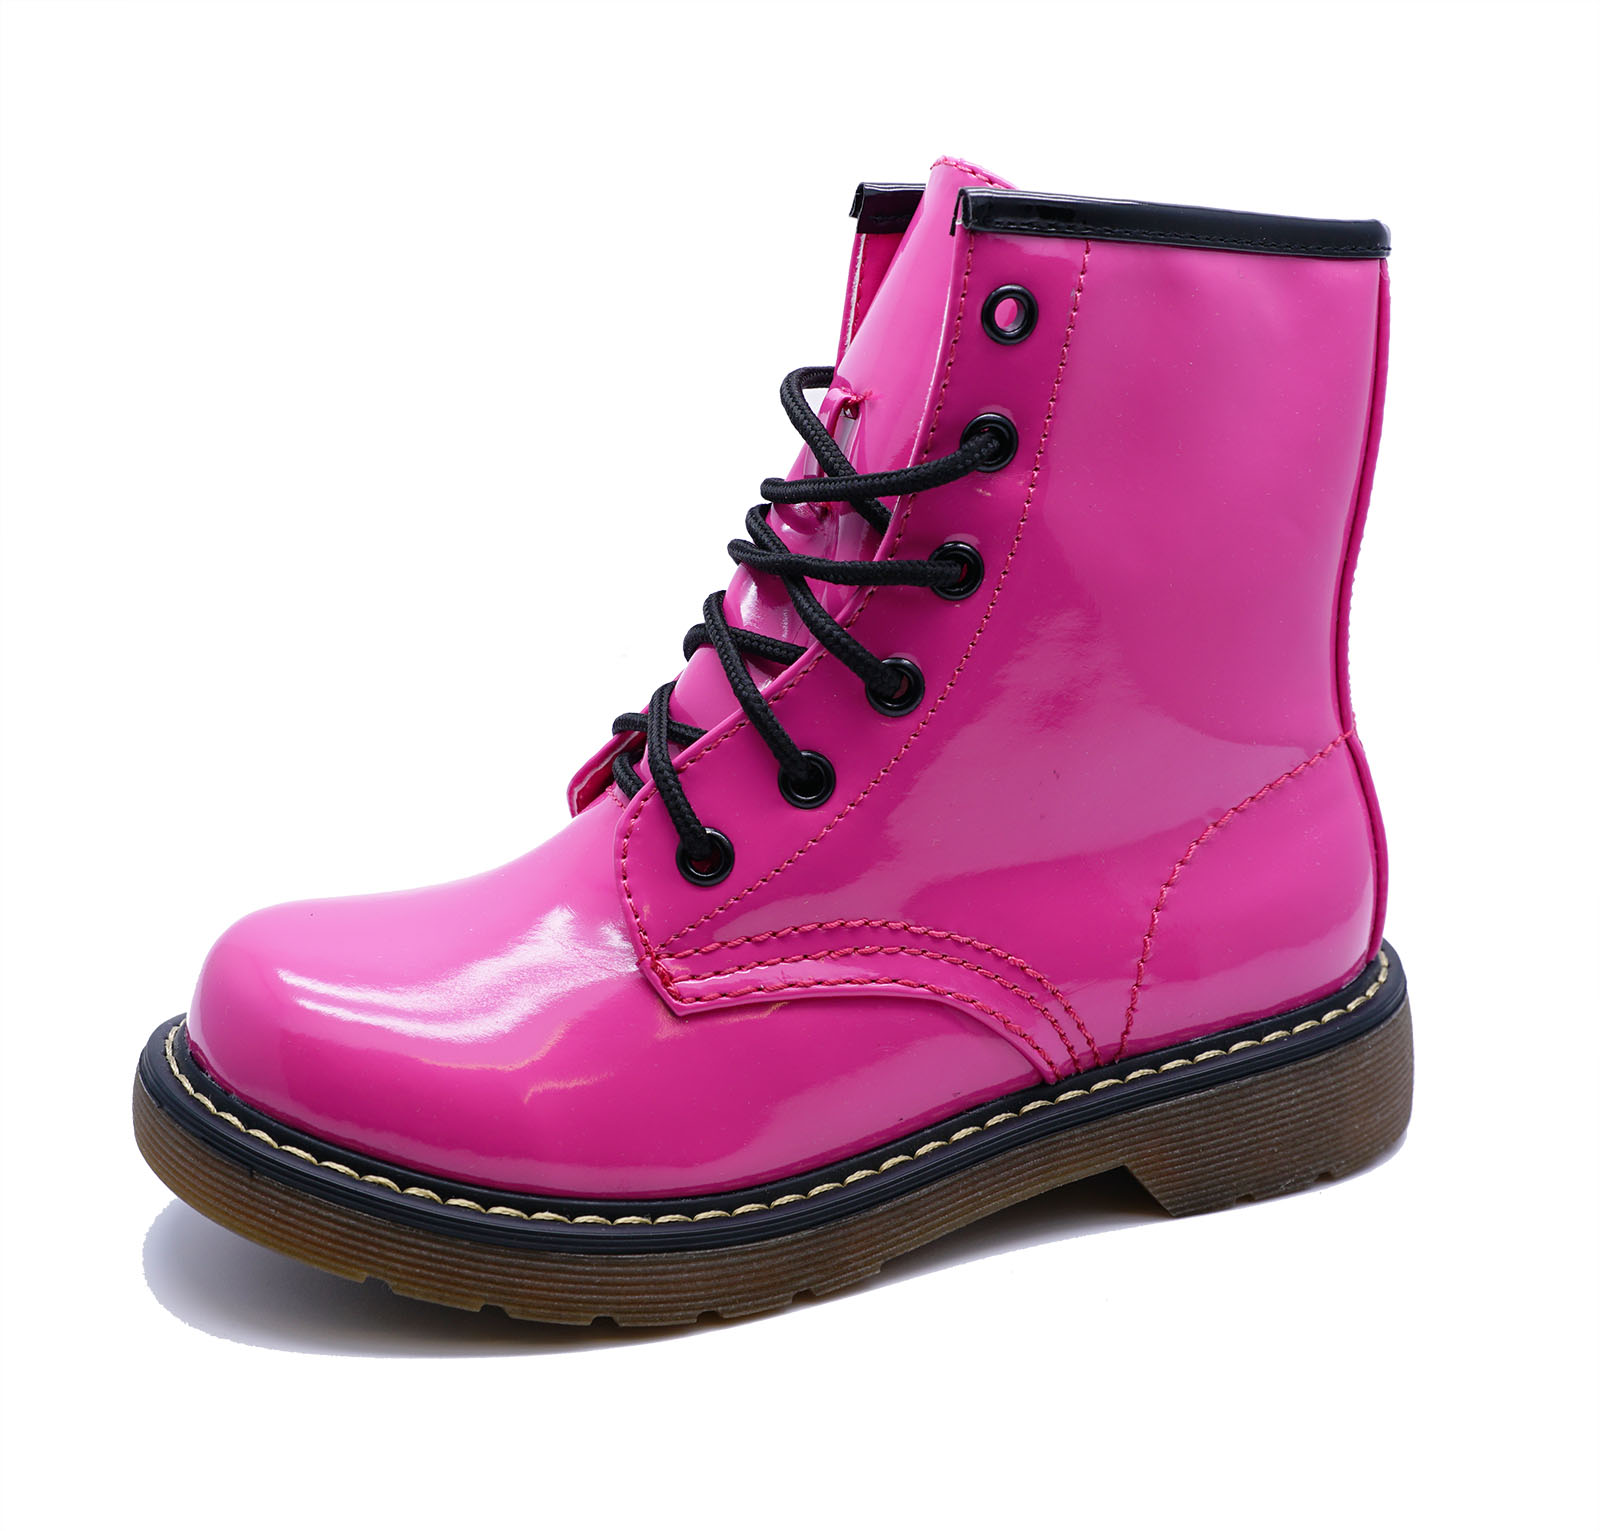 GIRLS FUCHSIA LACE-UP PATENT MILITARY ANKLE CALF BOVVER KIDS BOOTS SHOES UK 10-3